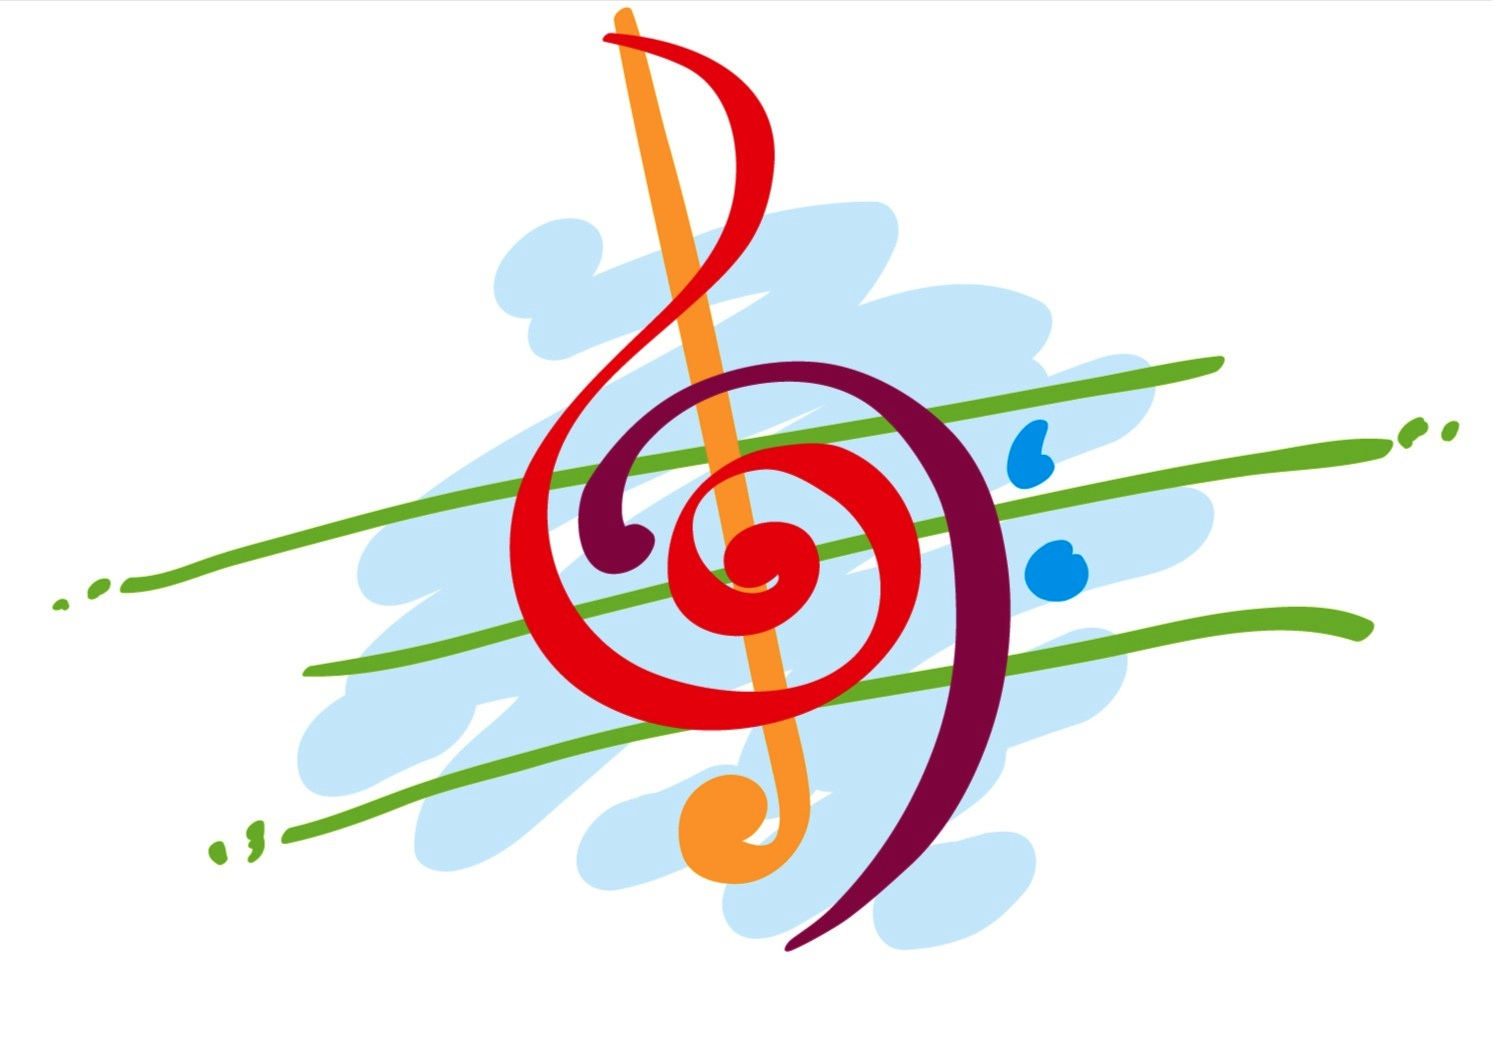 colorful-music-notes-in-a-line-tumblr static music note